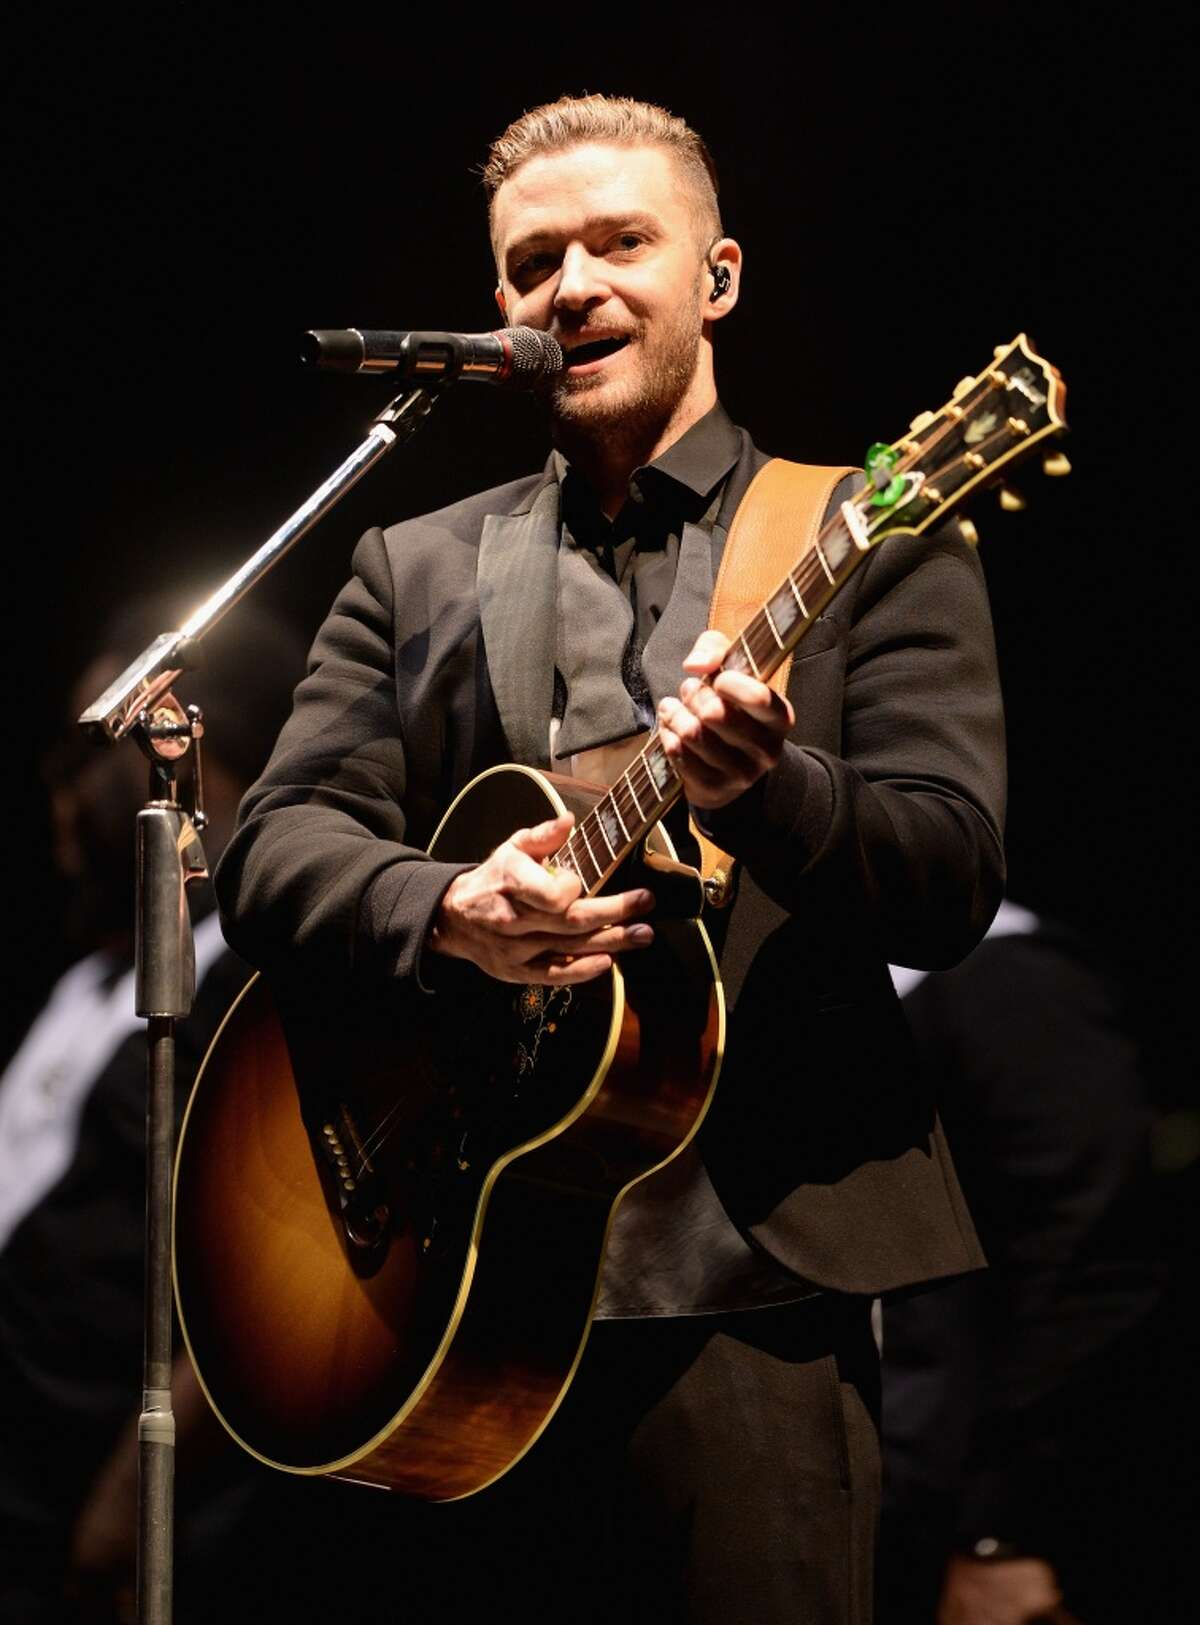 Justin Timberlake The singer/actor has laid claim to having both ADHD and obsessive compulsive disorder, saying it hasn't been easy for him.